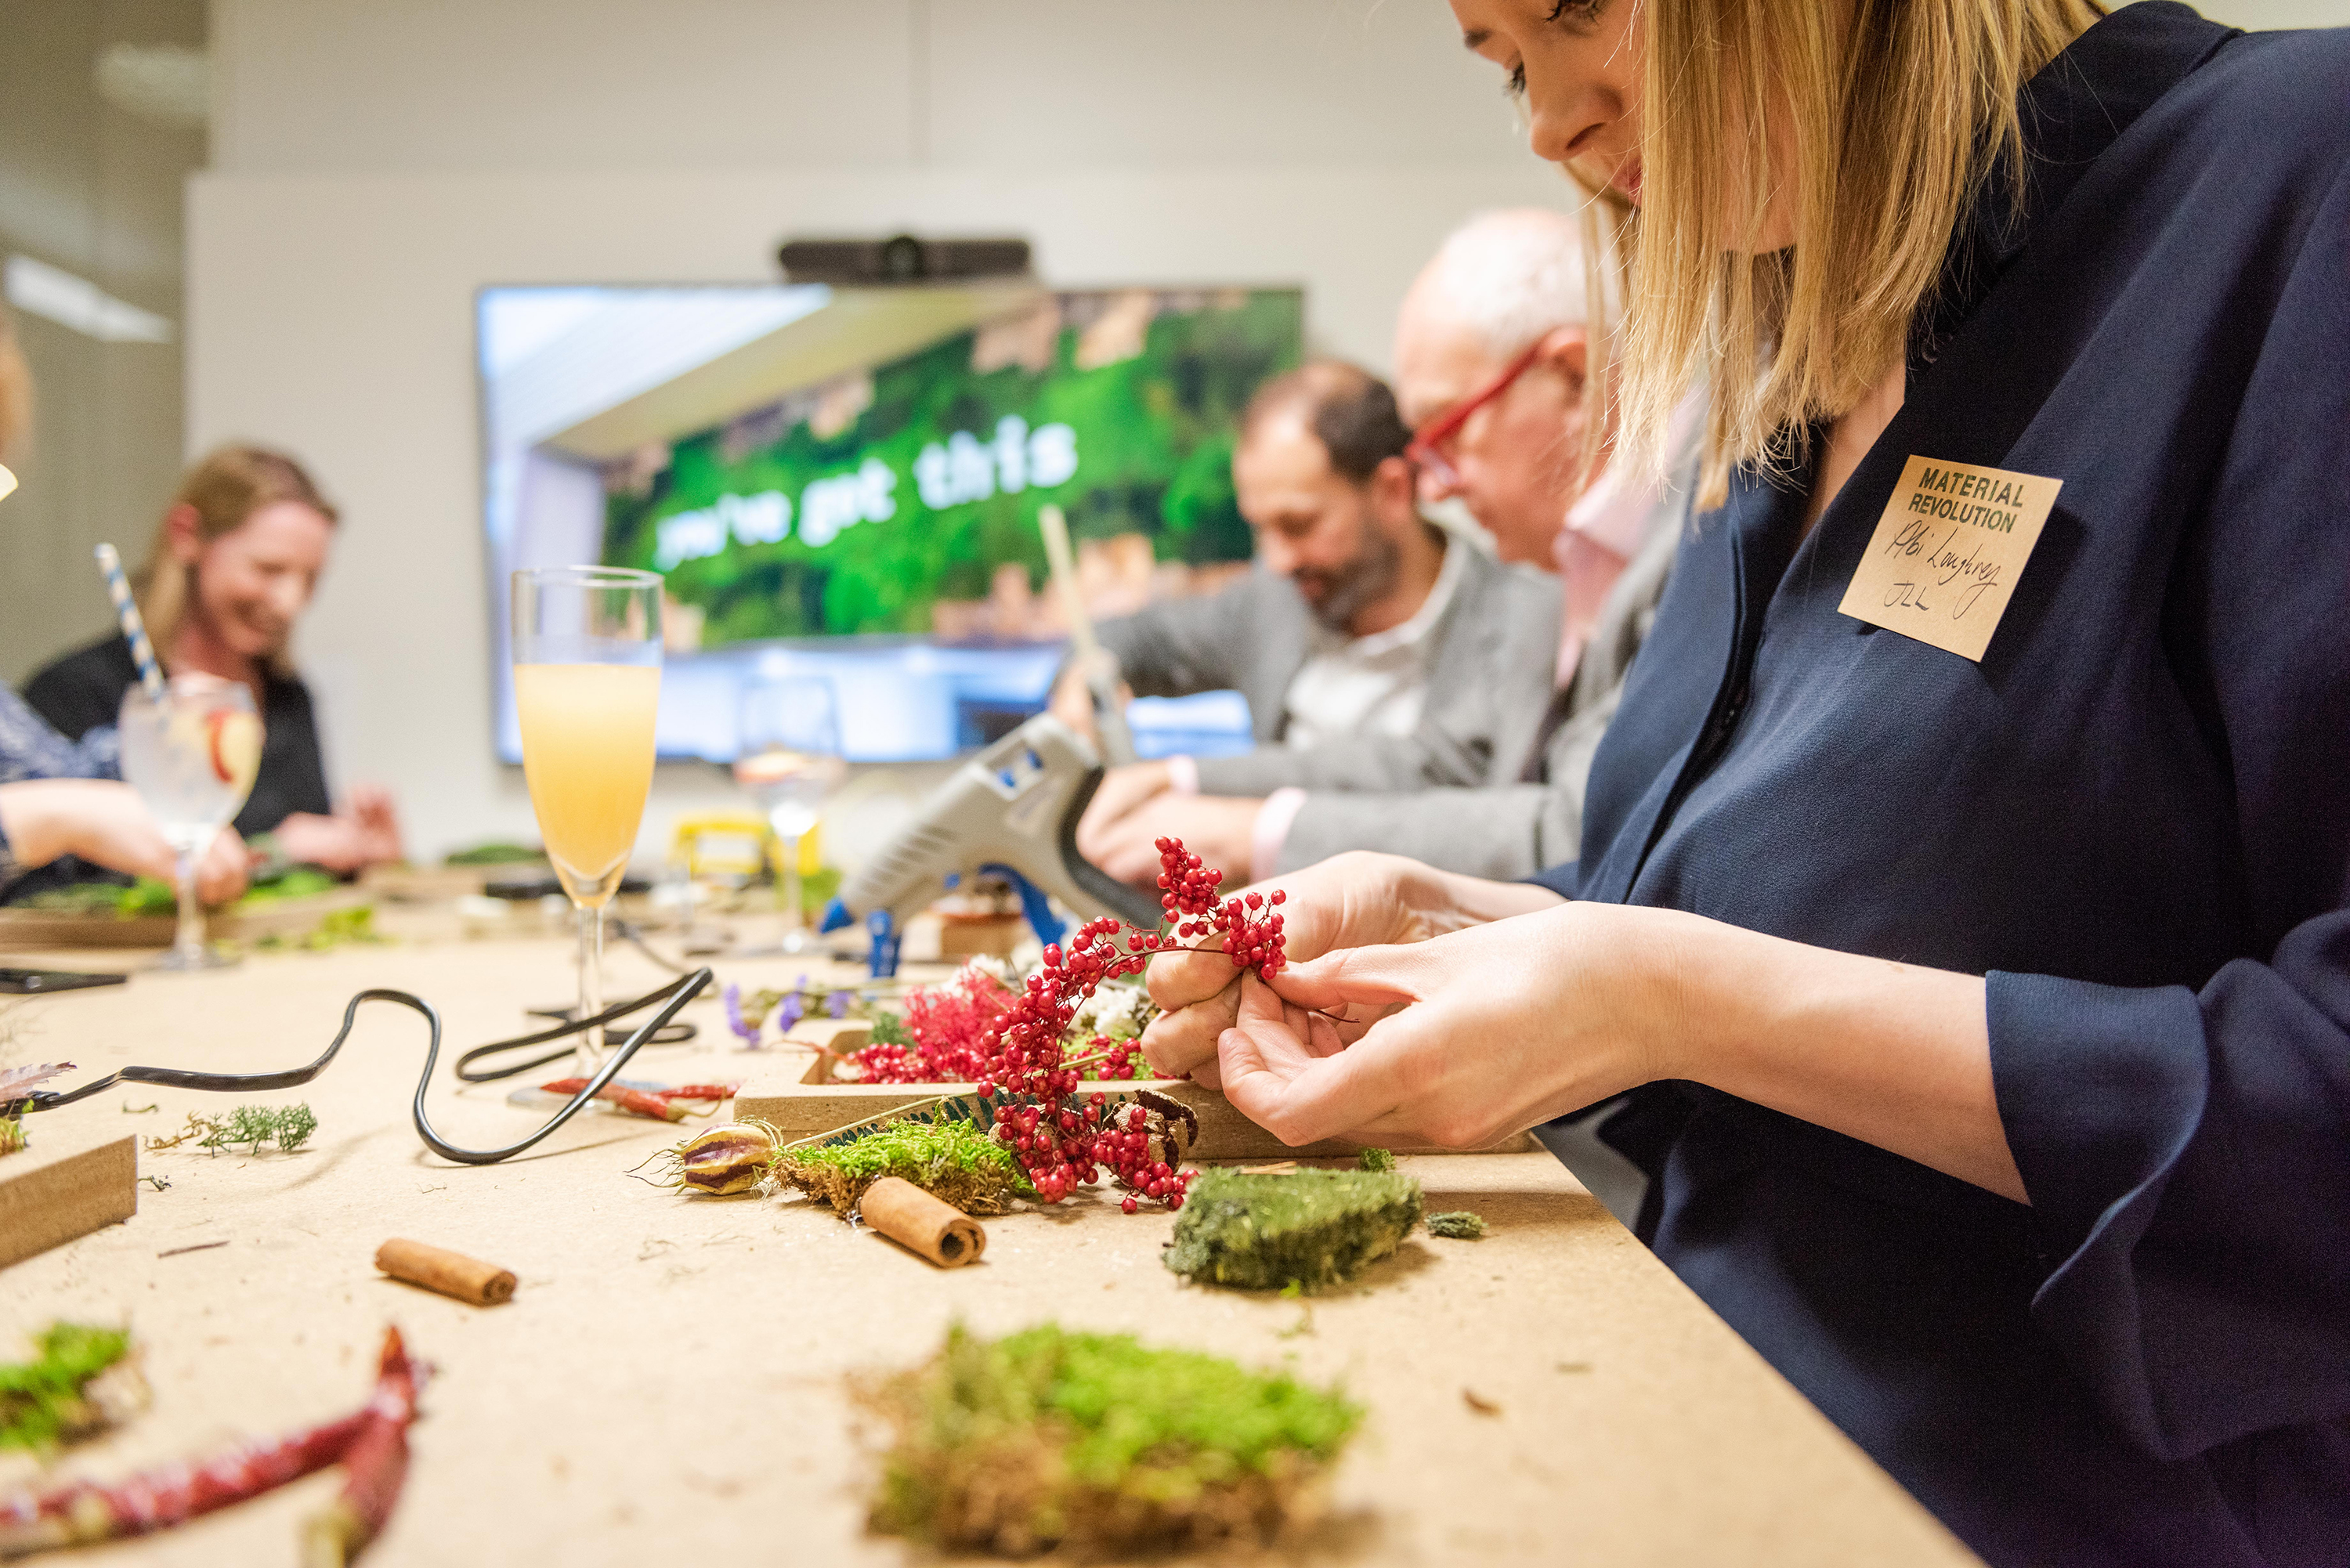 Creating masterpieces at the 'hands on' moss workshop